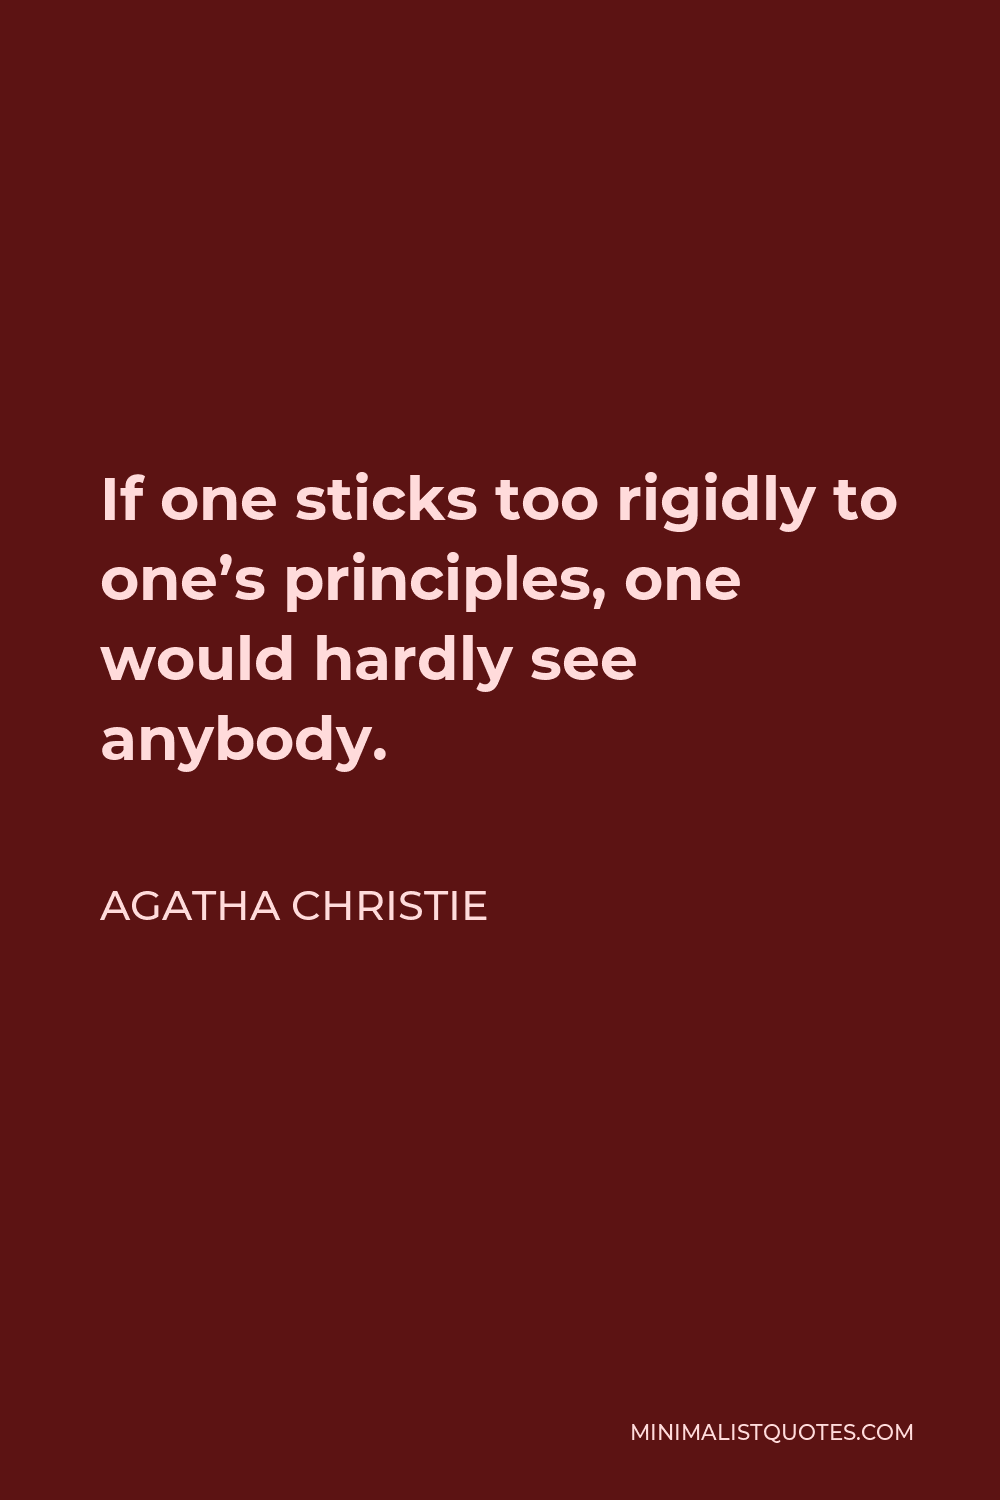 Agatha Christie Quote - If one sticks too rigidly to one's principles, one would hardly see anybody.